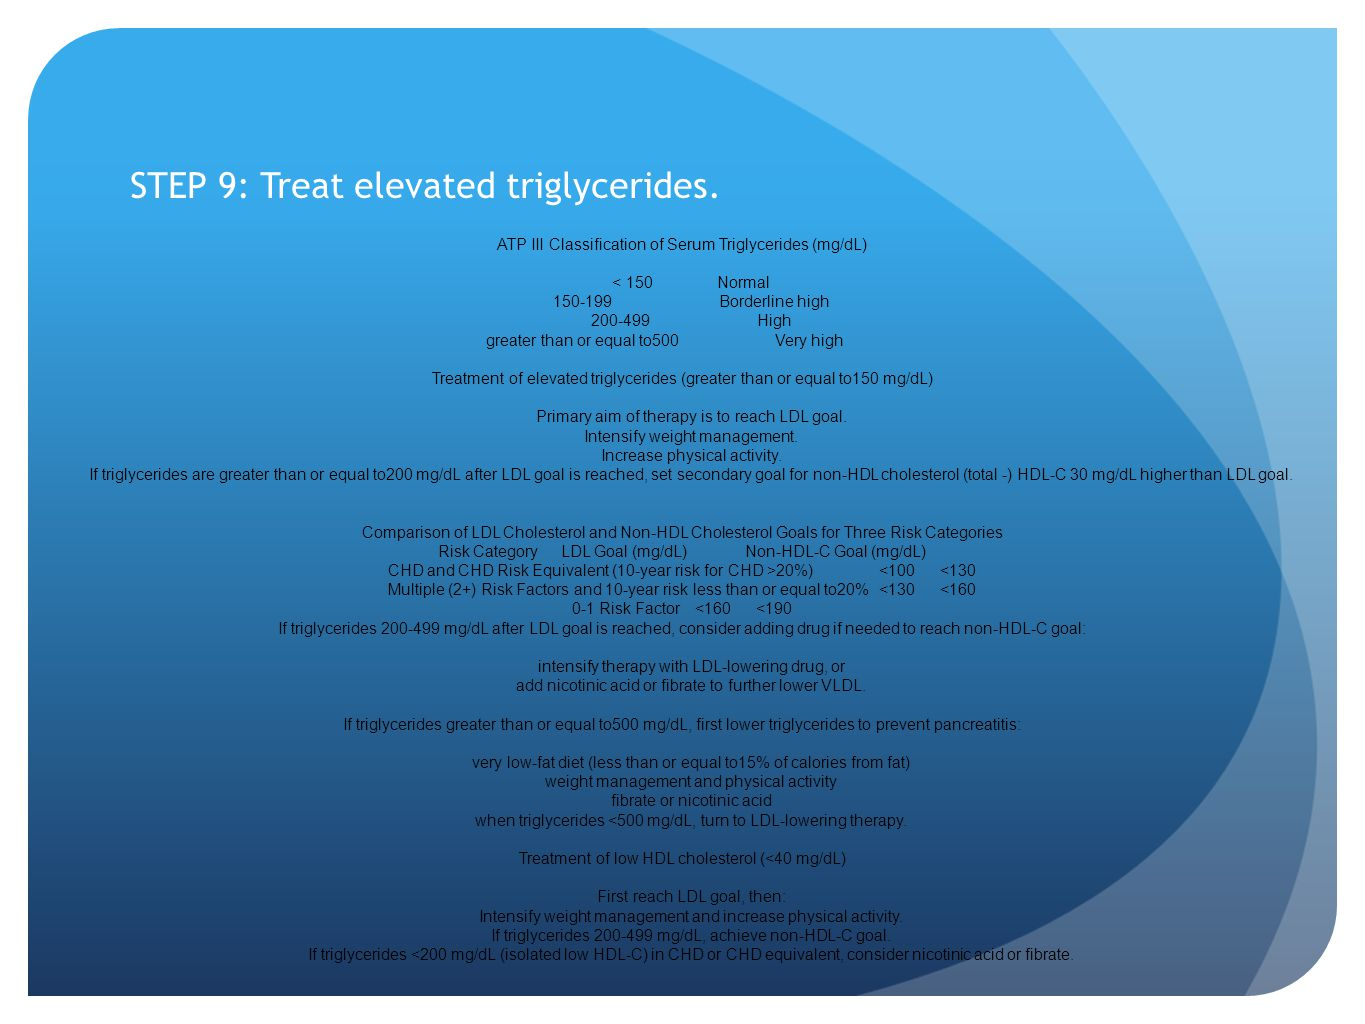 STEP 9: Treat elevated triglycerides.